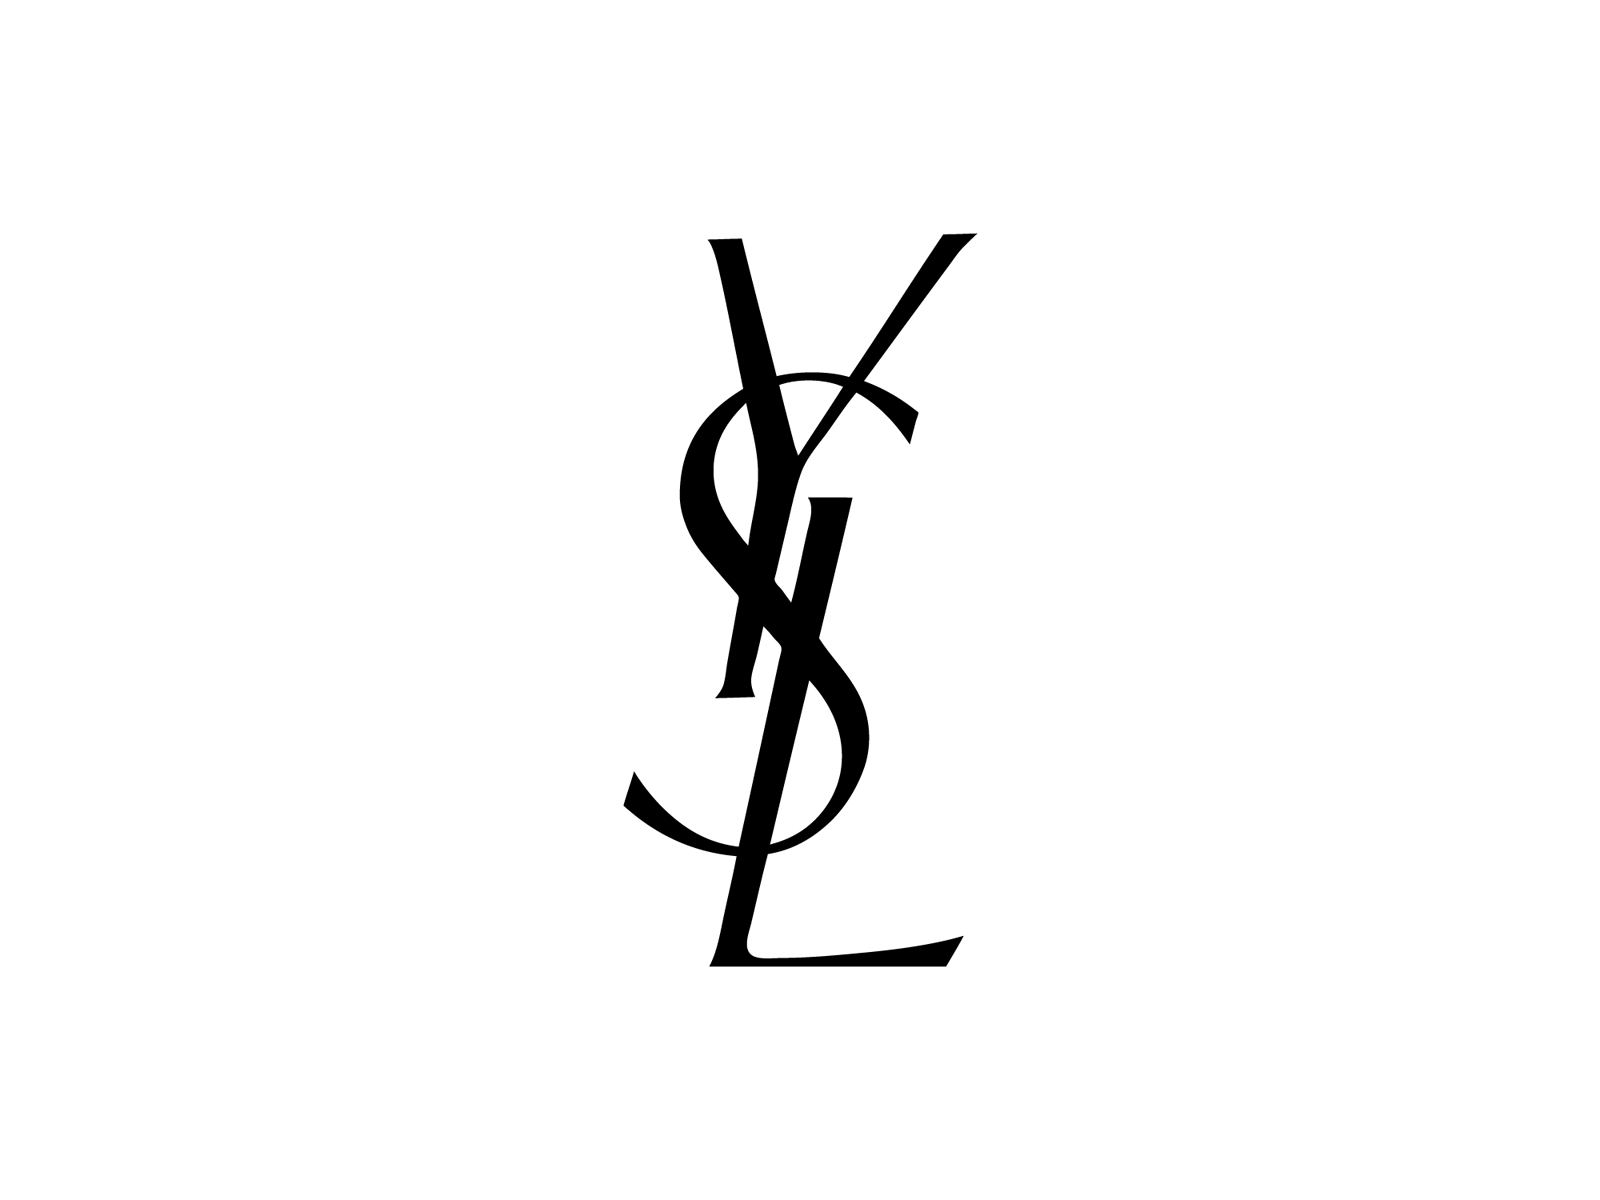 Yves Fashion Laurent Brand Perfume Saint Logo PNG Image